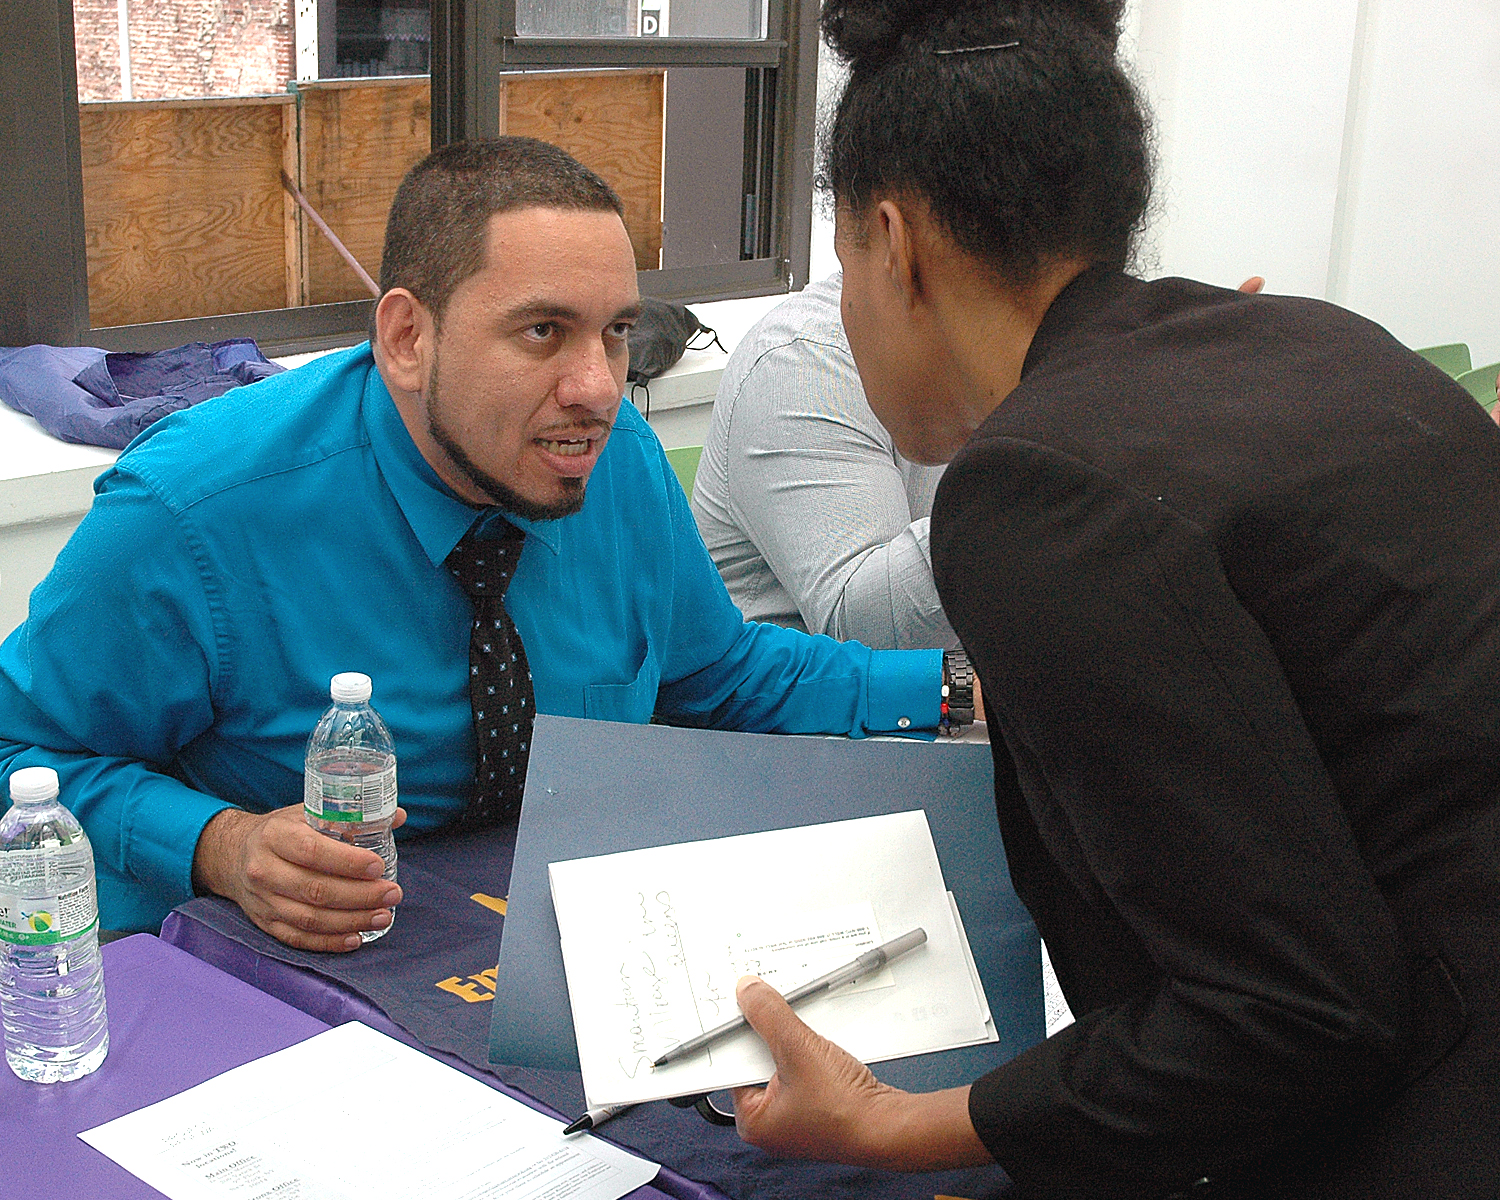 One of the job fair interviewers…with one attendee